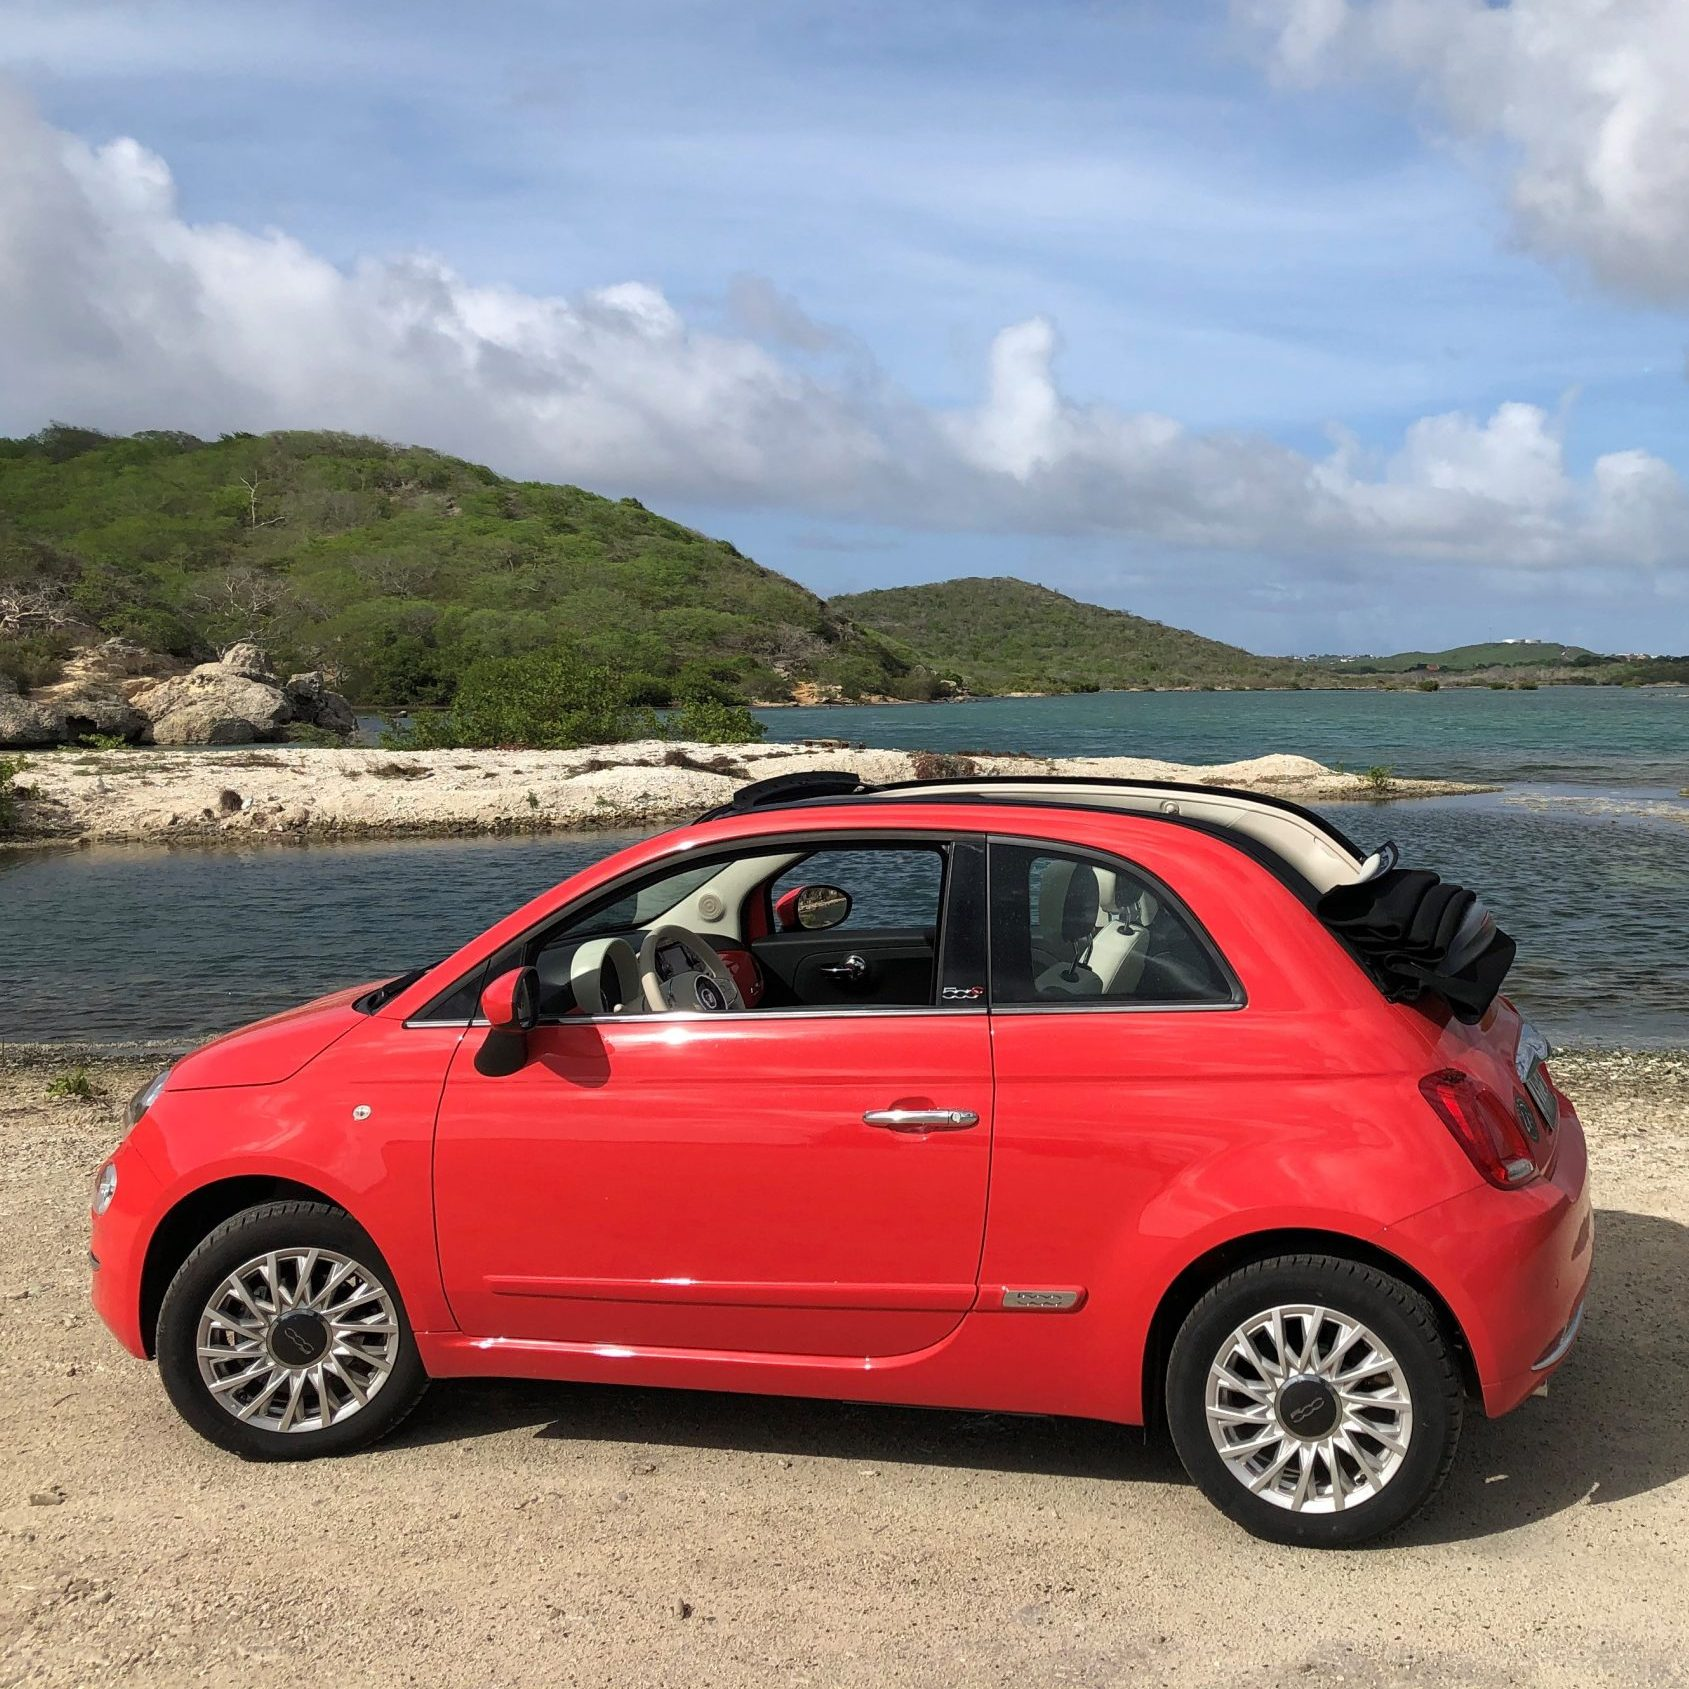 Fiat 500 cabrio coral red manual - USD 55 p.d.*